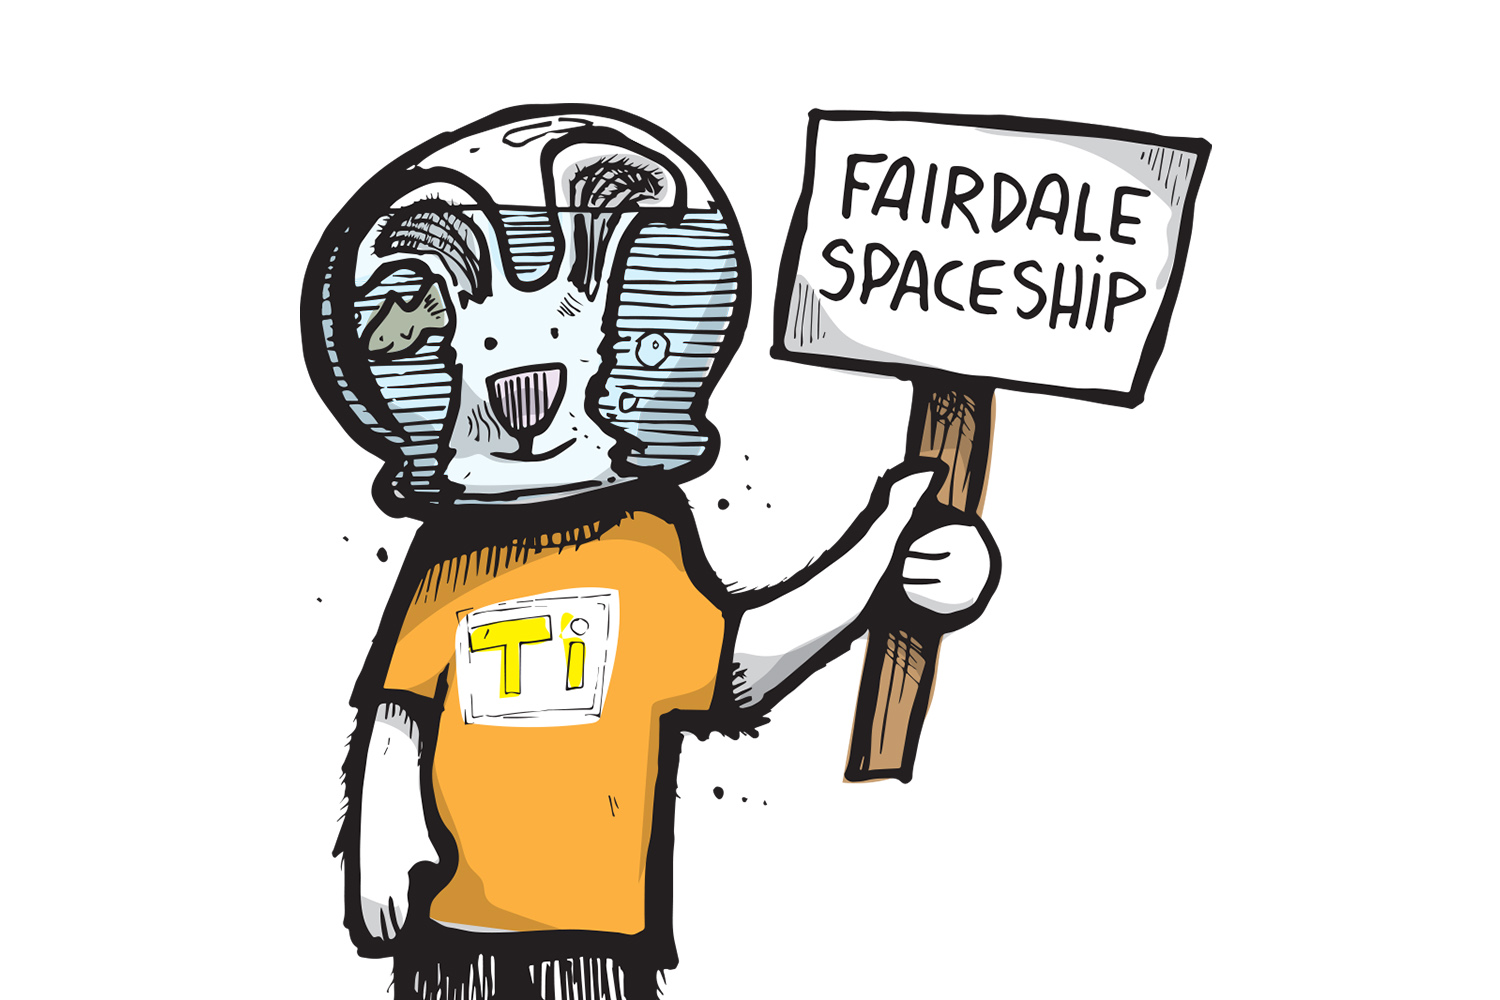 fairdale-spaceship